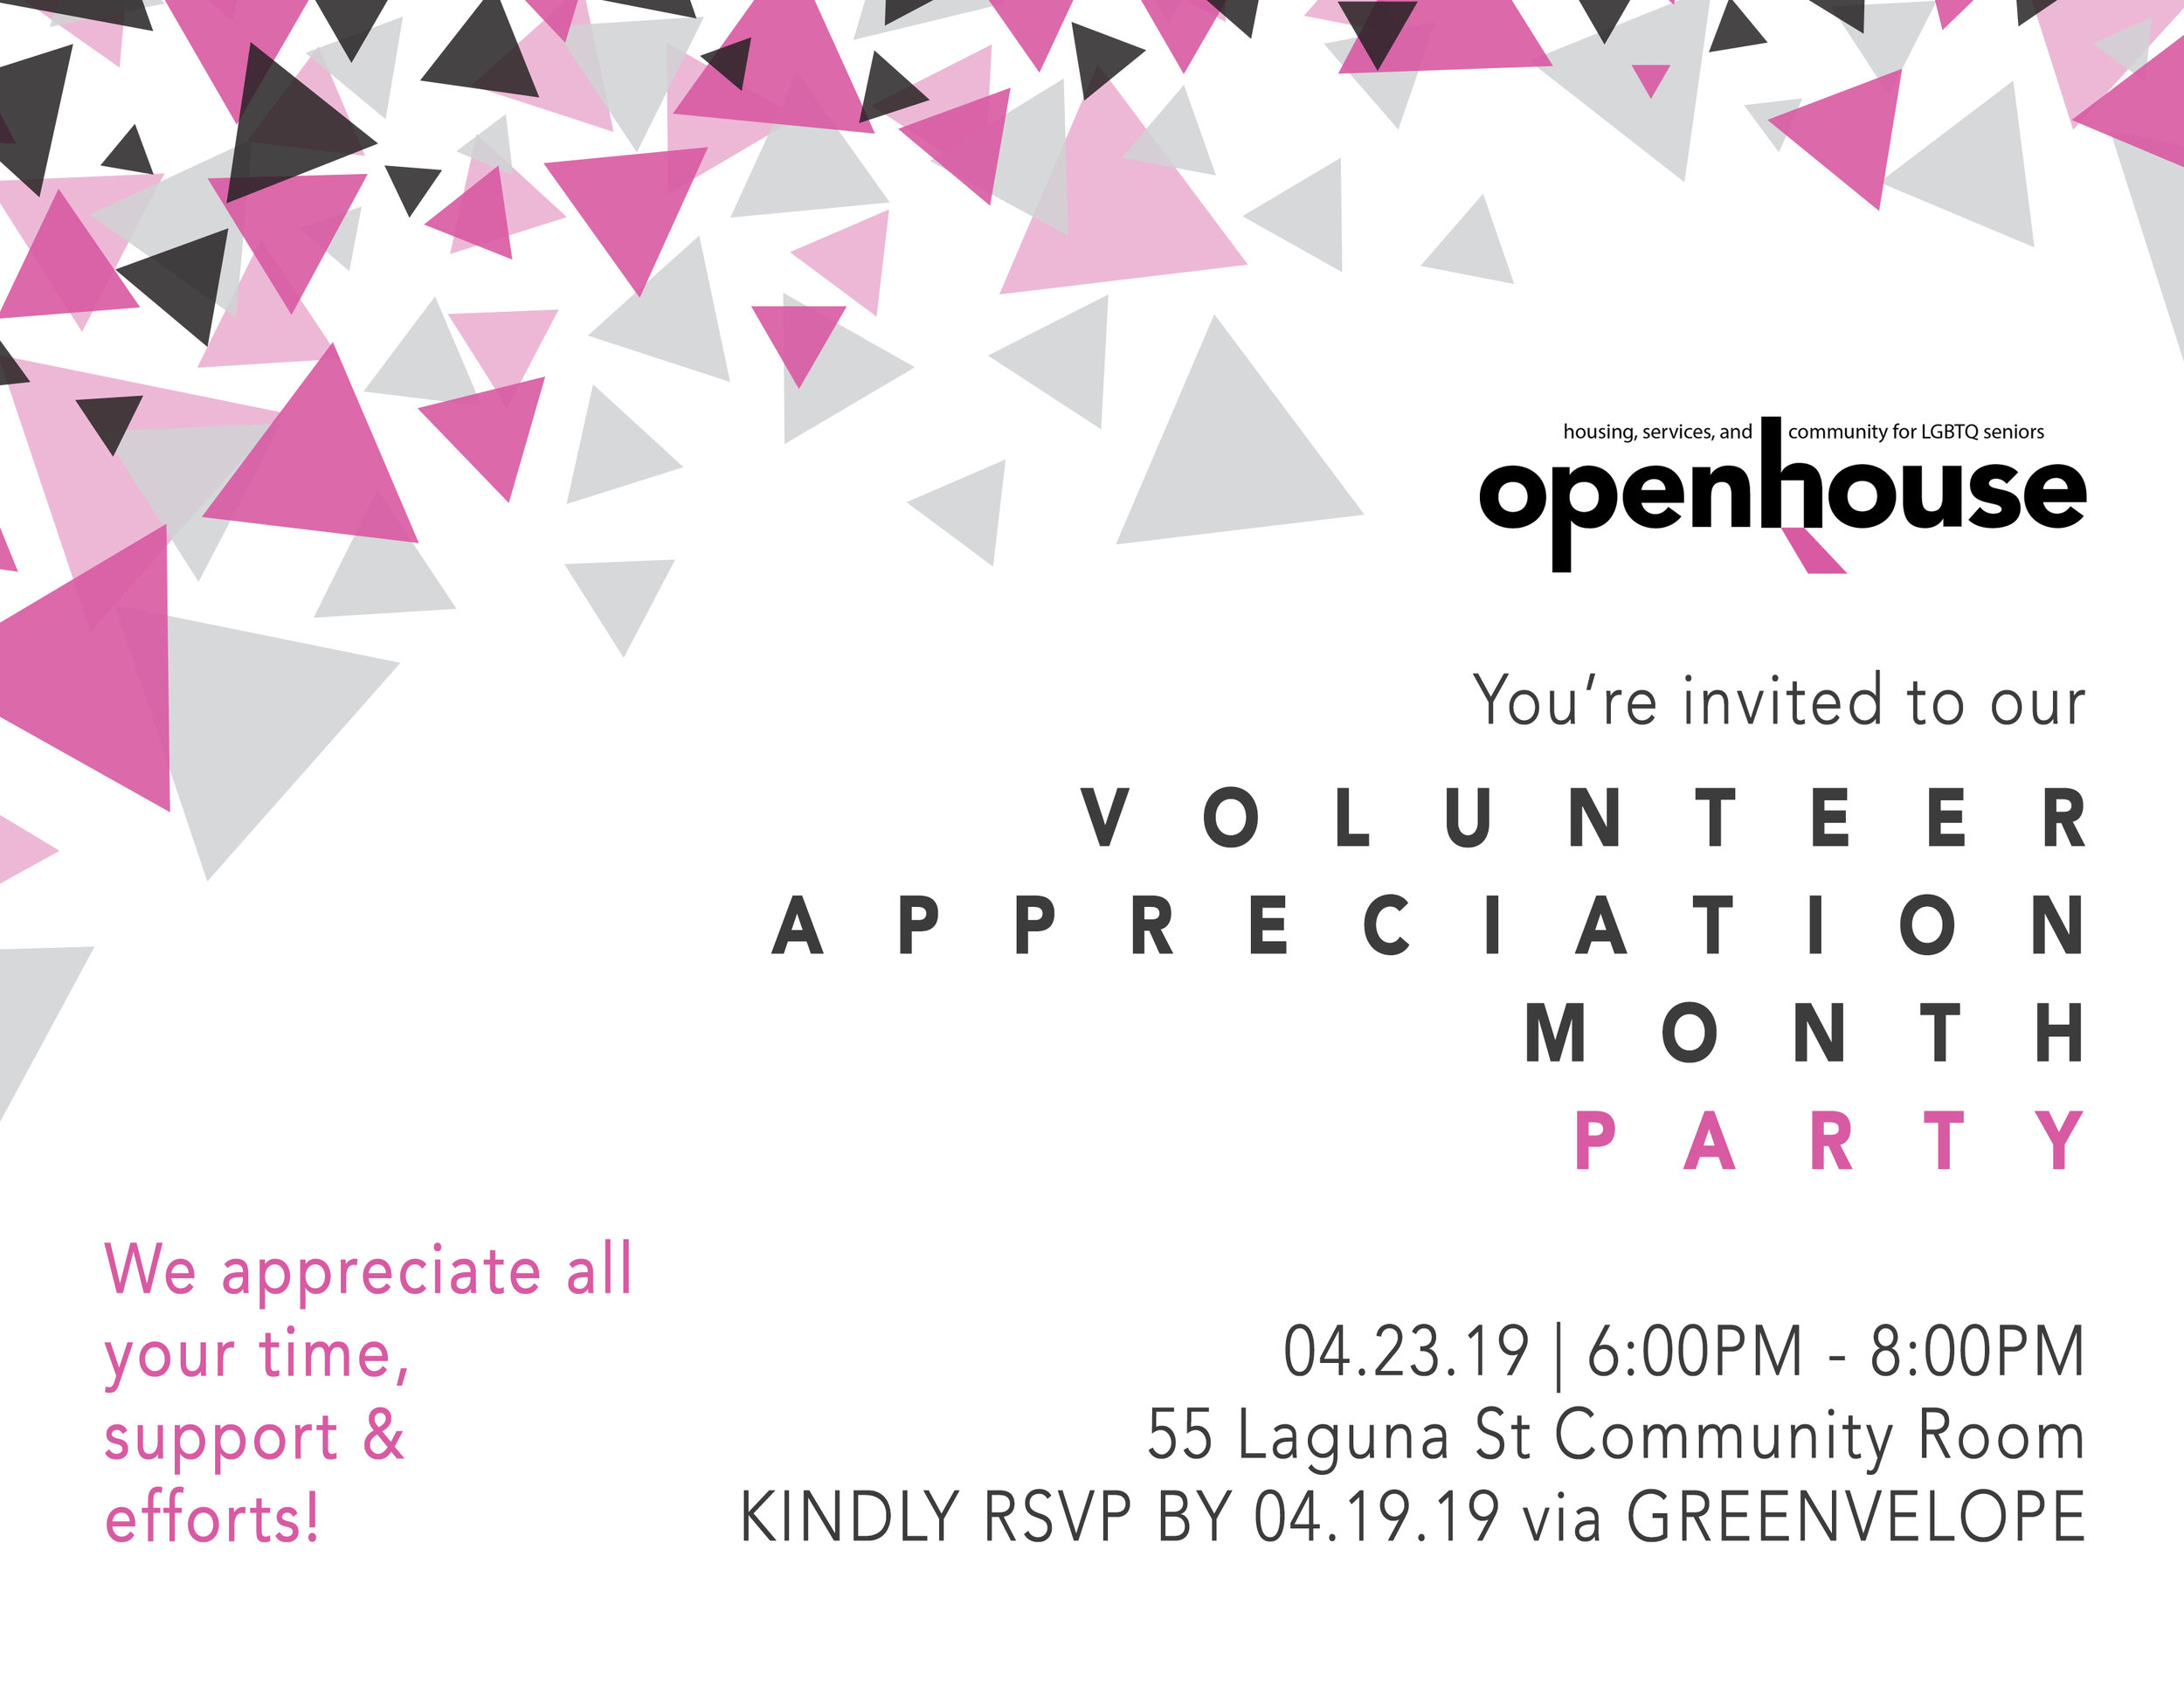 Invitation I designed for the first    Volunteer Appreciation Month Party at Openhouse   . First time Openhouse has celebrated volunteerism in April (volunteer appreciation month).